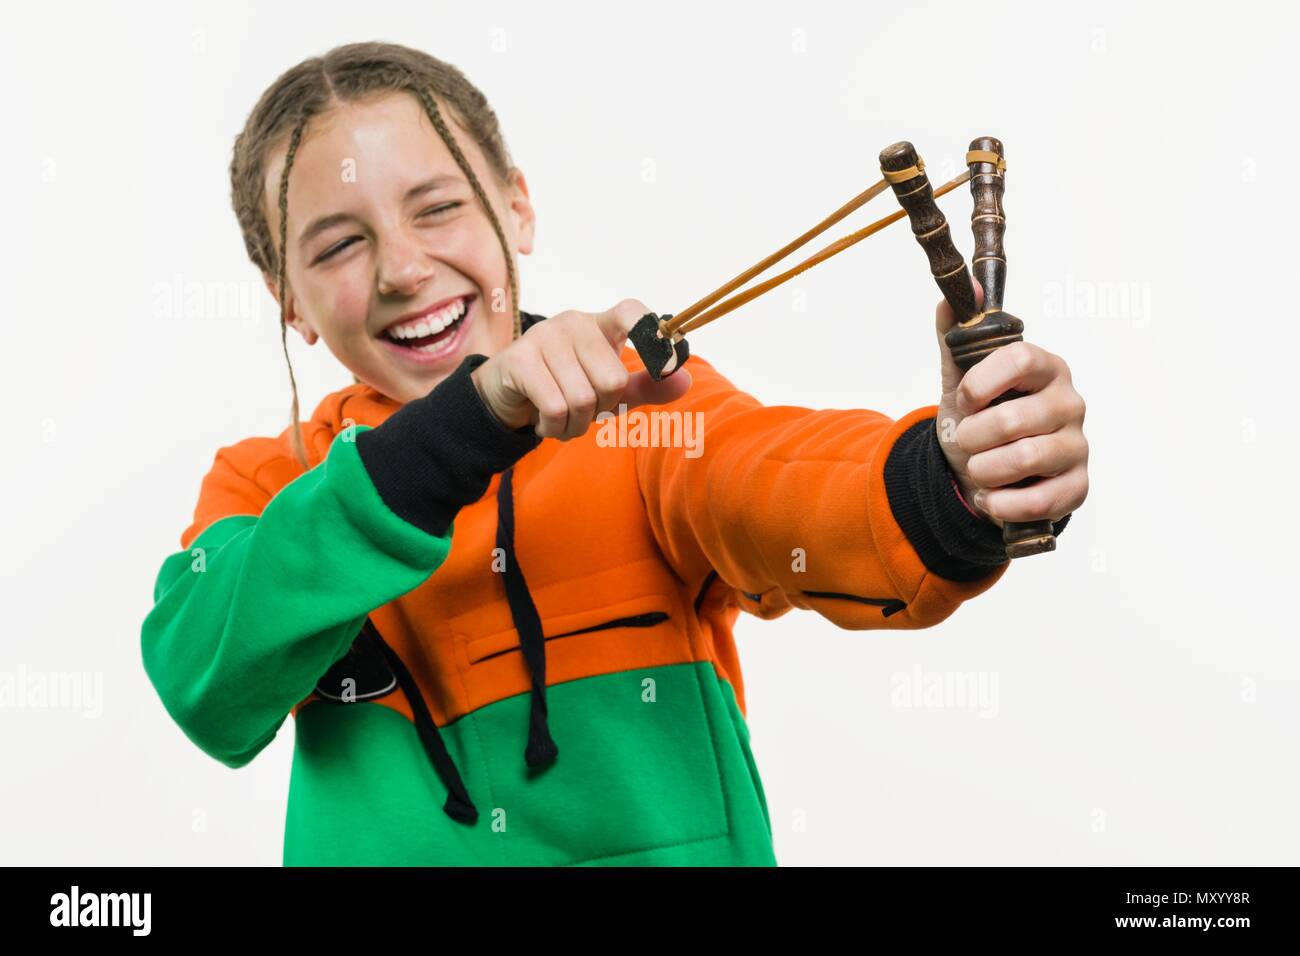 Naughty girl teenager with curly hair holds a slingshot. White Background Studio Stock Photo